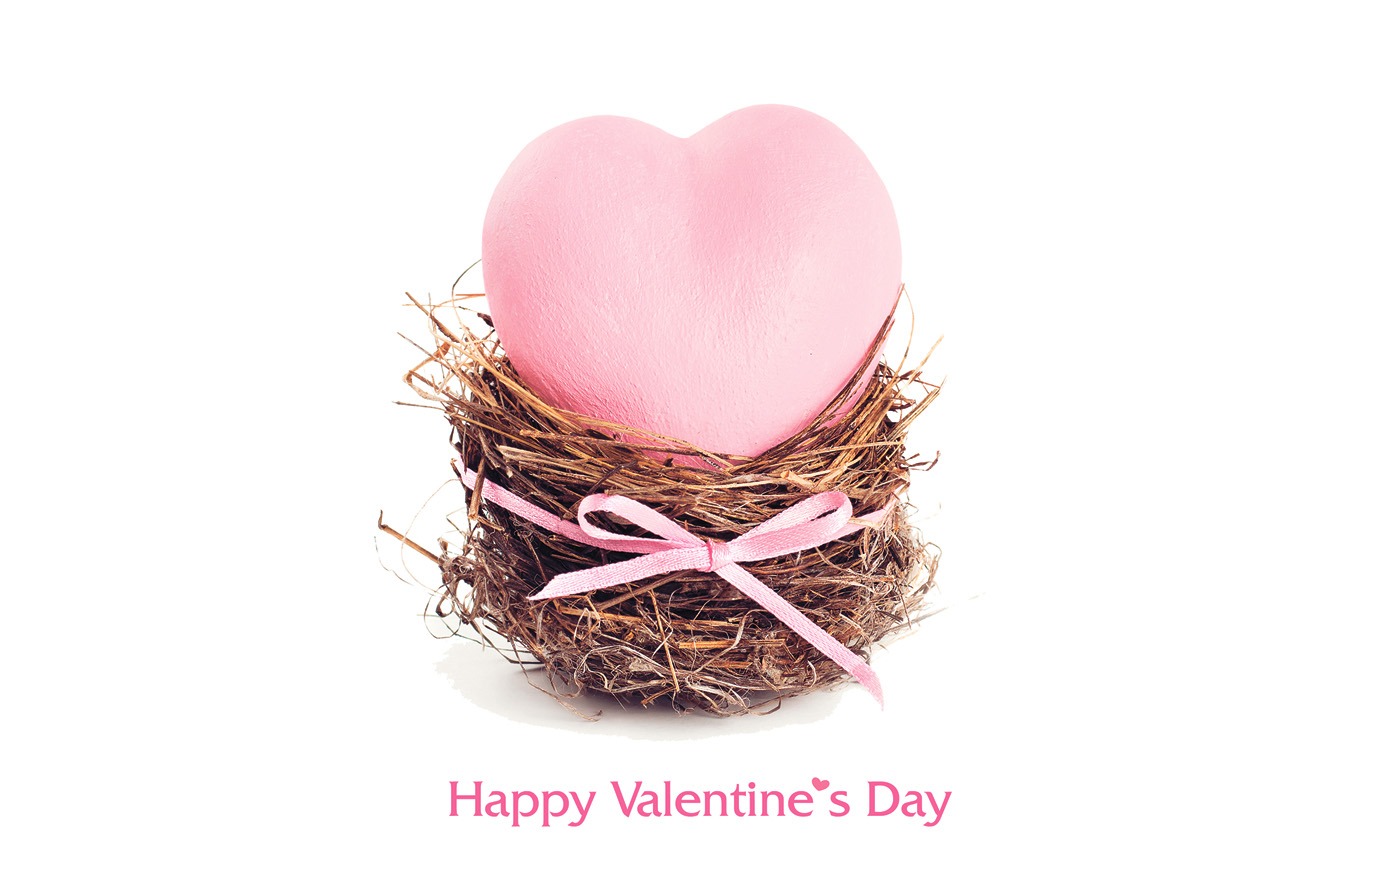 On pink heart-shaped nest 50066